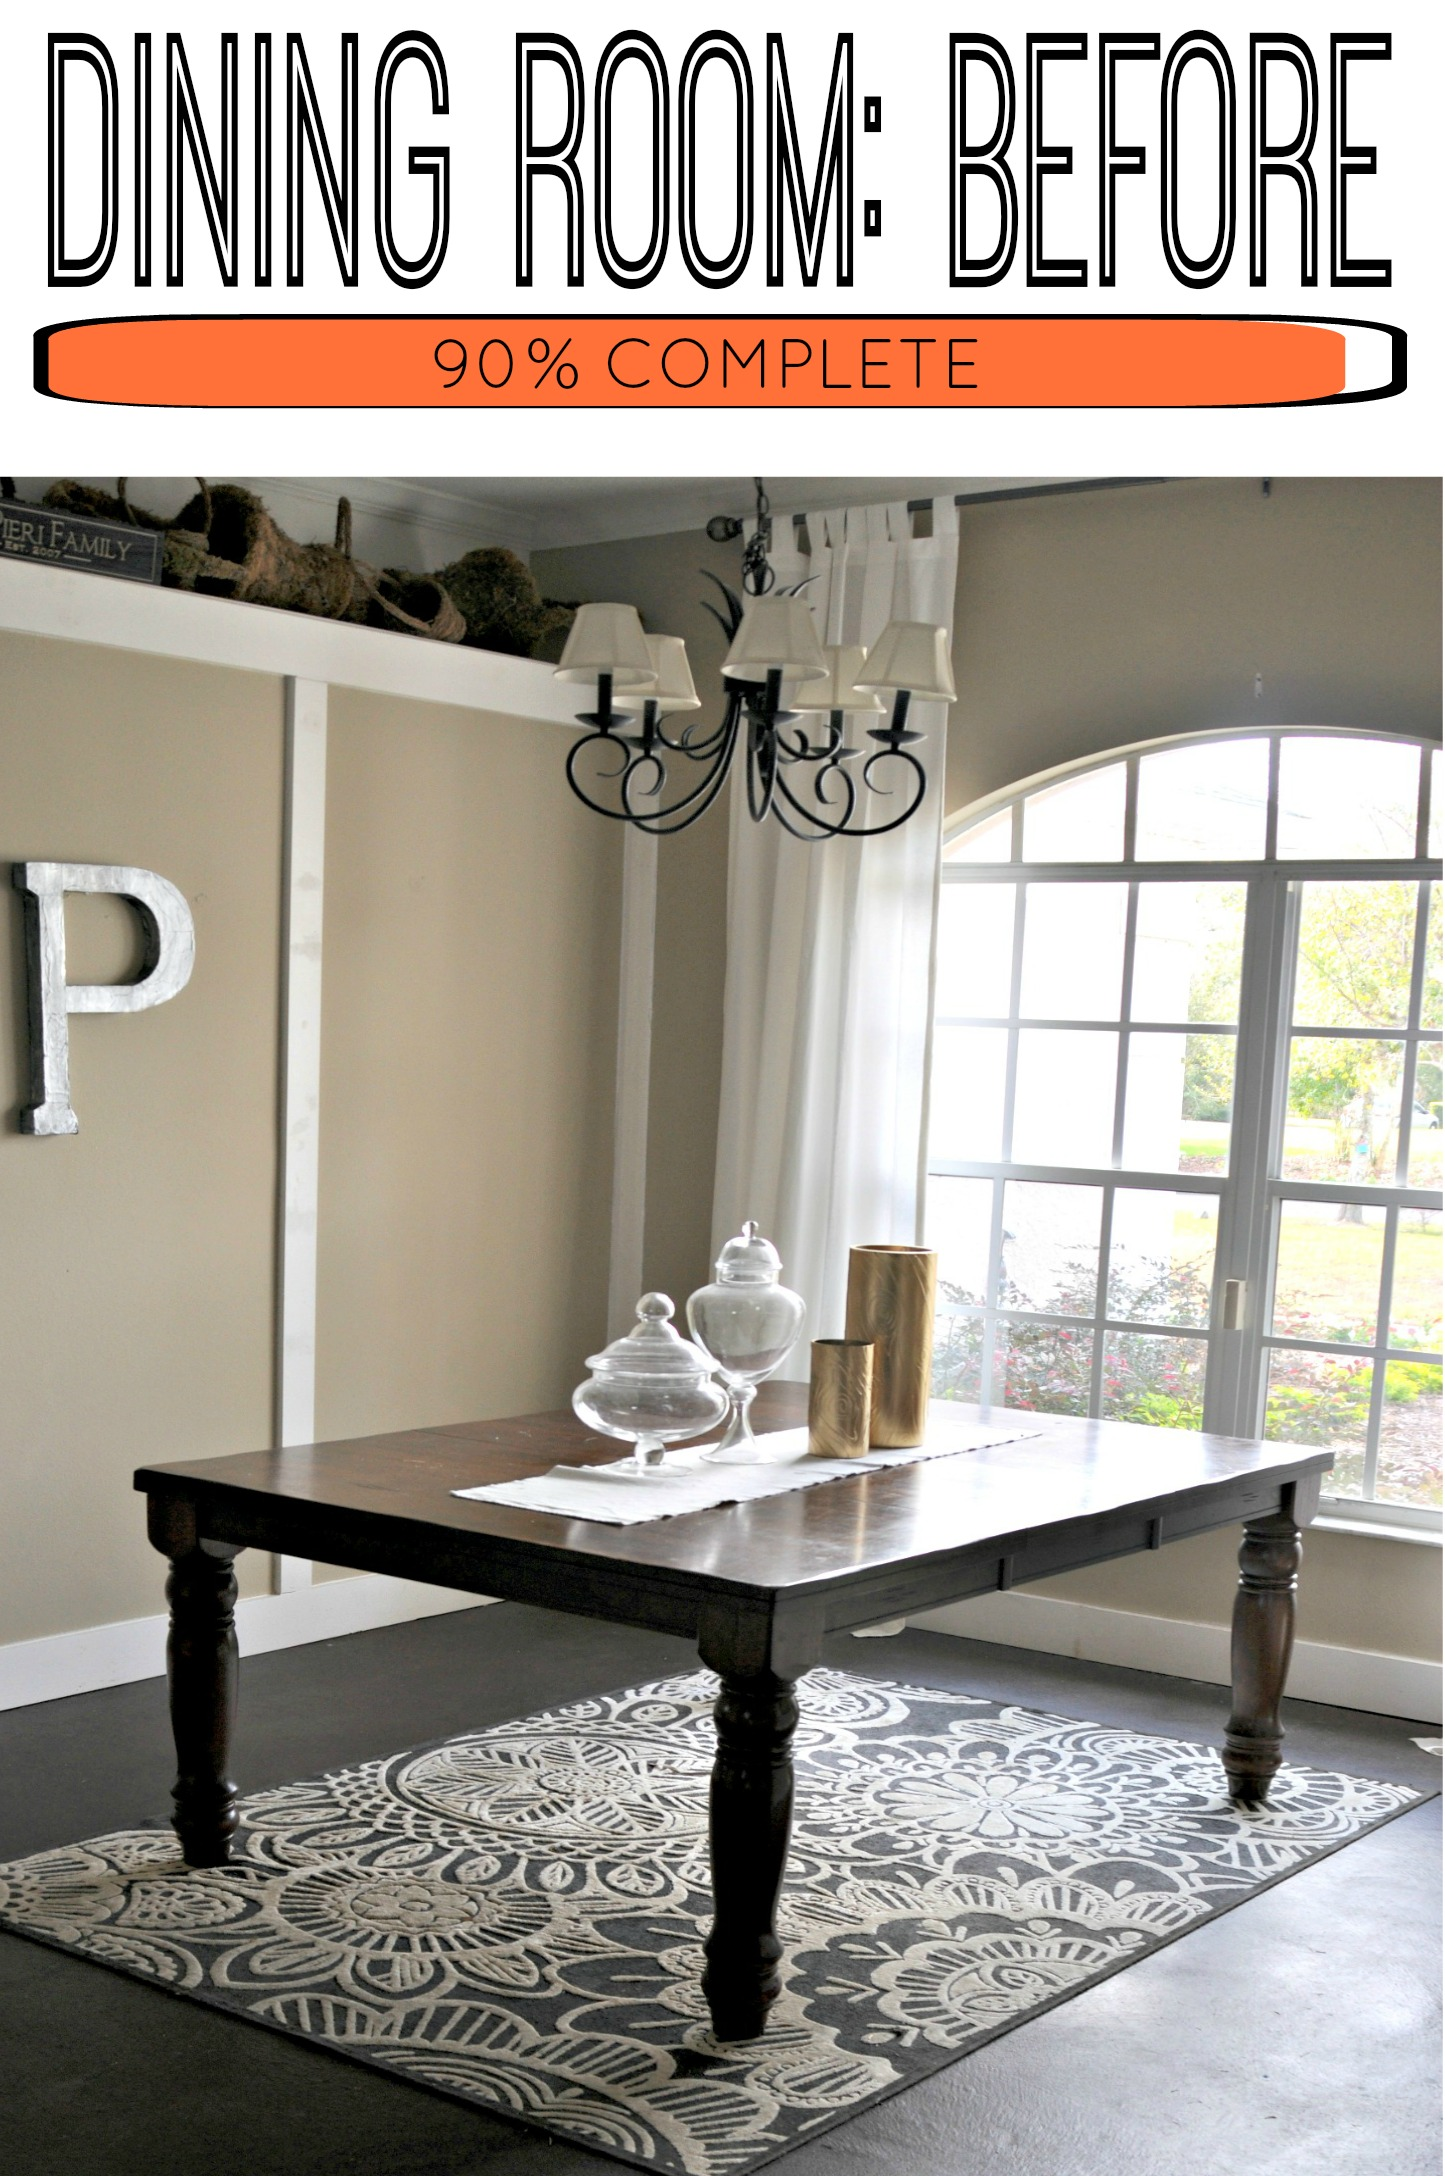 how much to refinish a dining room table dining table set refinishing before desjar interior. Black Bedroom Furniture Sets. Home Design Ideas